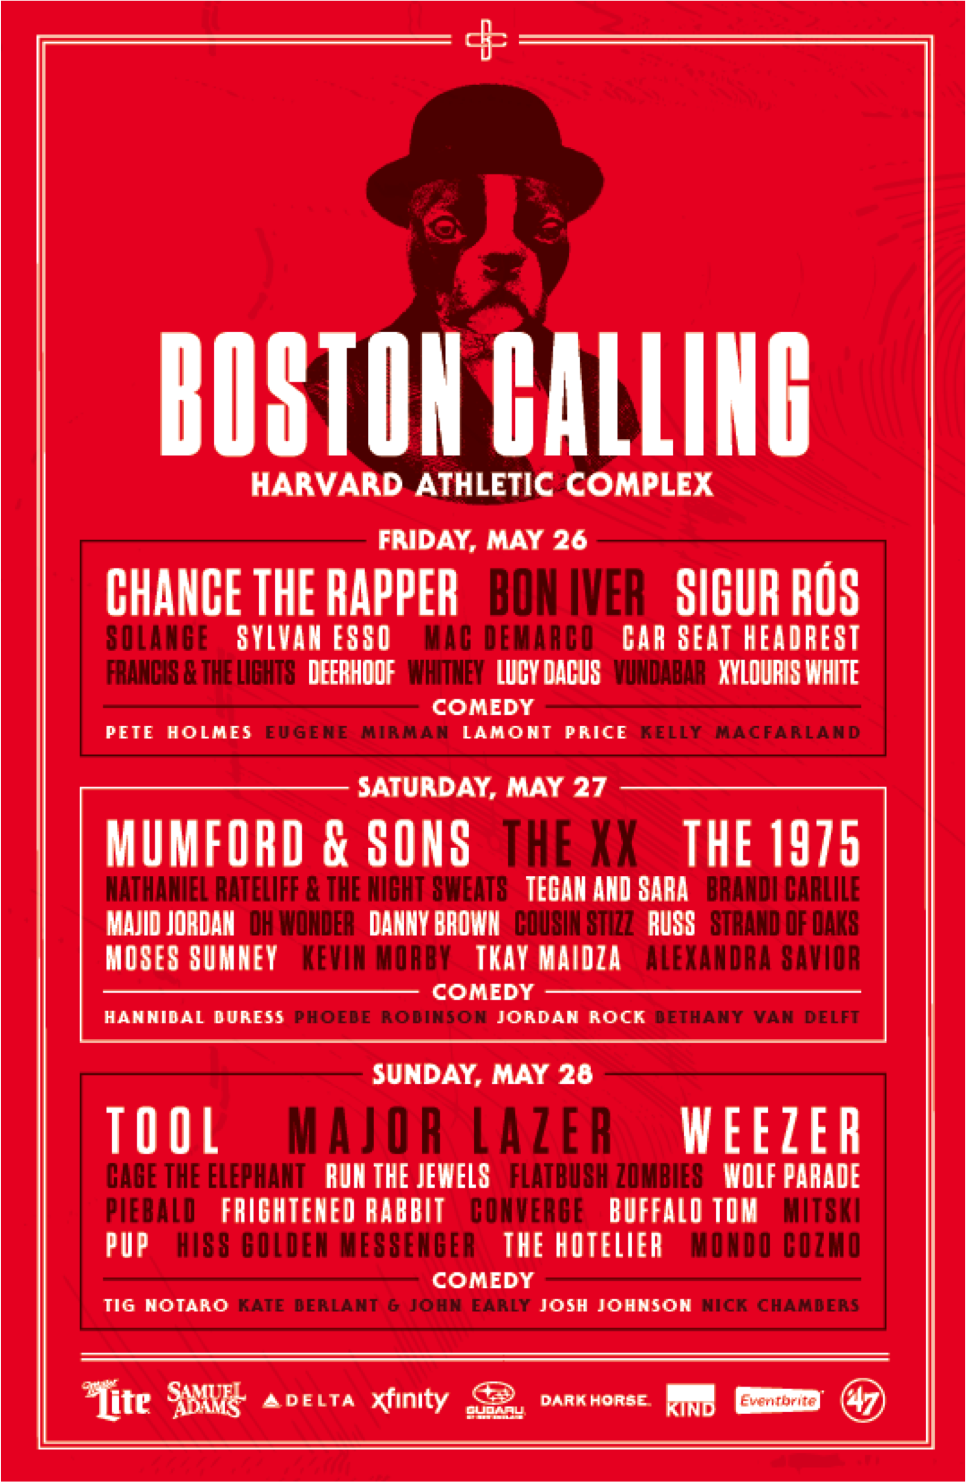 unnamed 1 Boston Calling replaces Natalie Portmans film festival with Hannibal Buress comedy festival